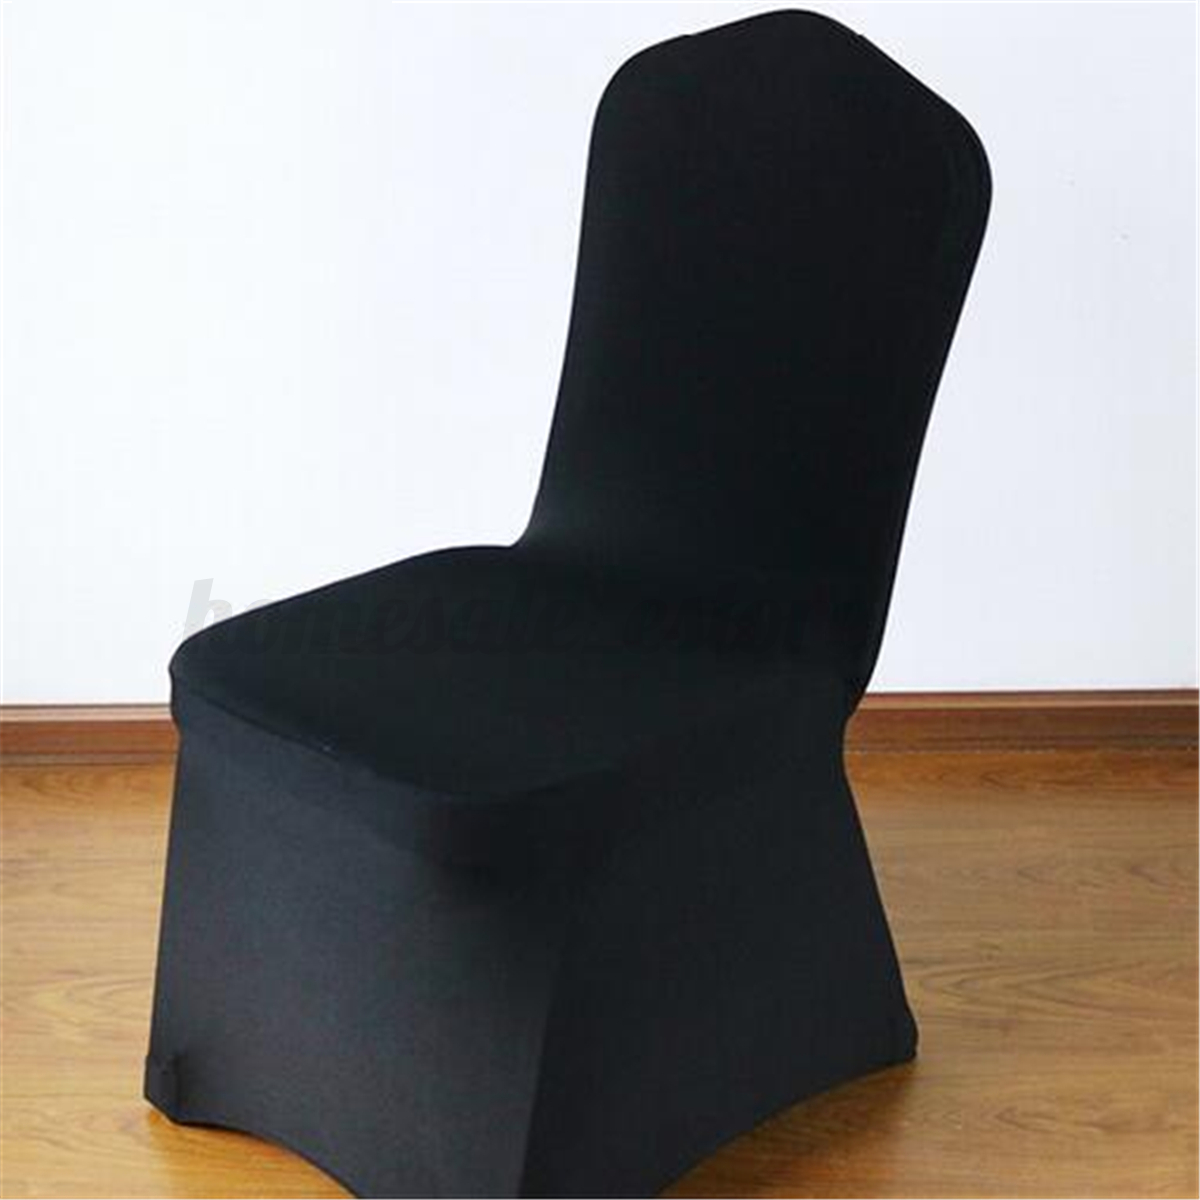 Cheap Spandex Chair Covers 10 50 100pcs Universal Polyester Spandex Chair Cover